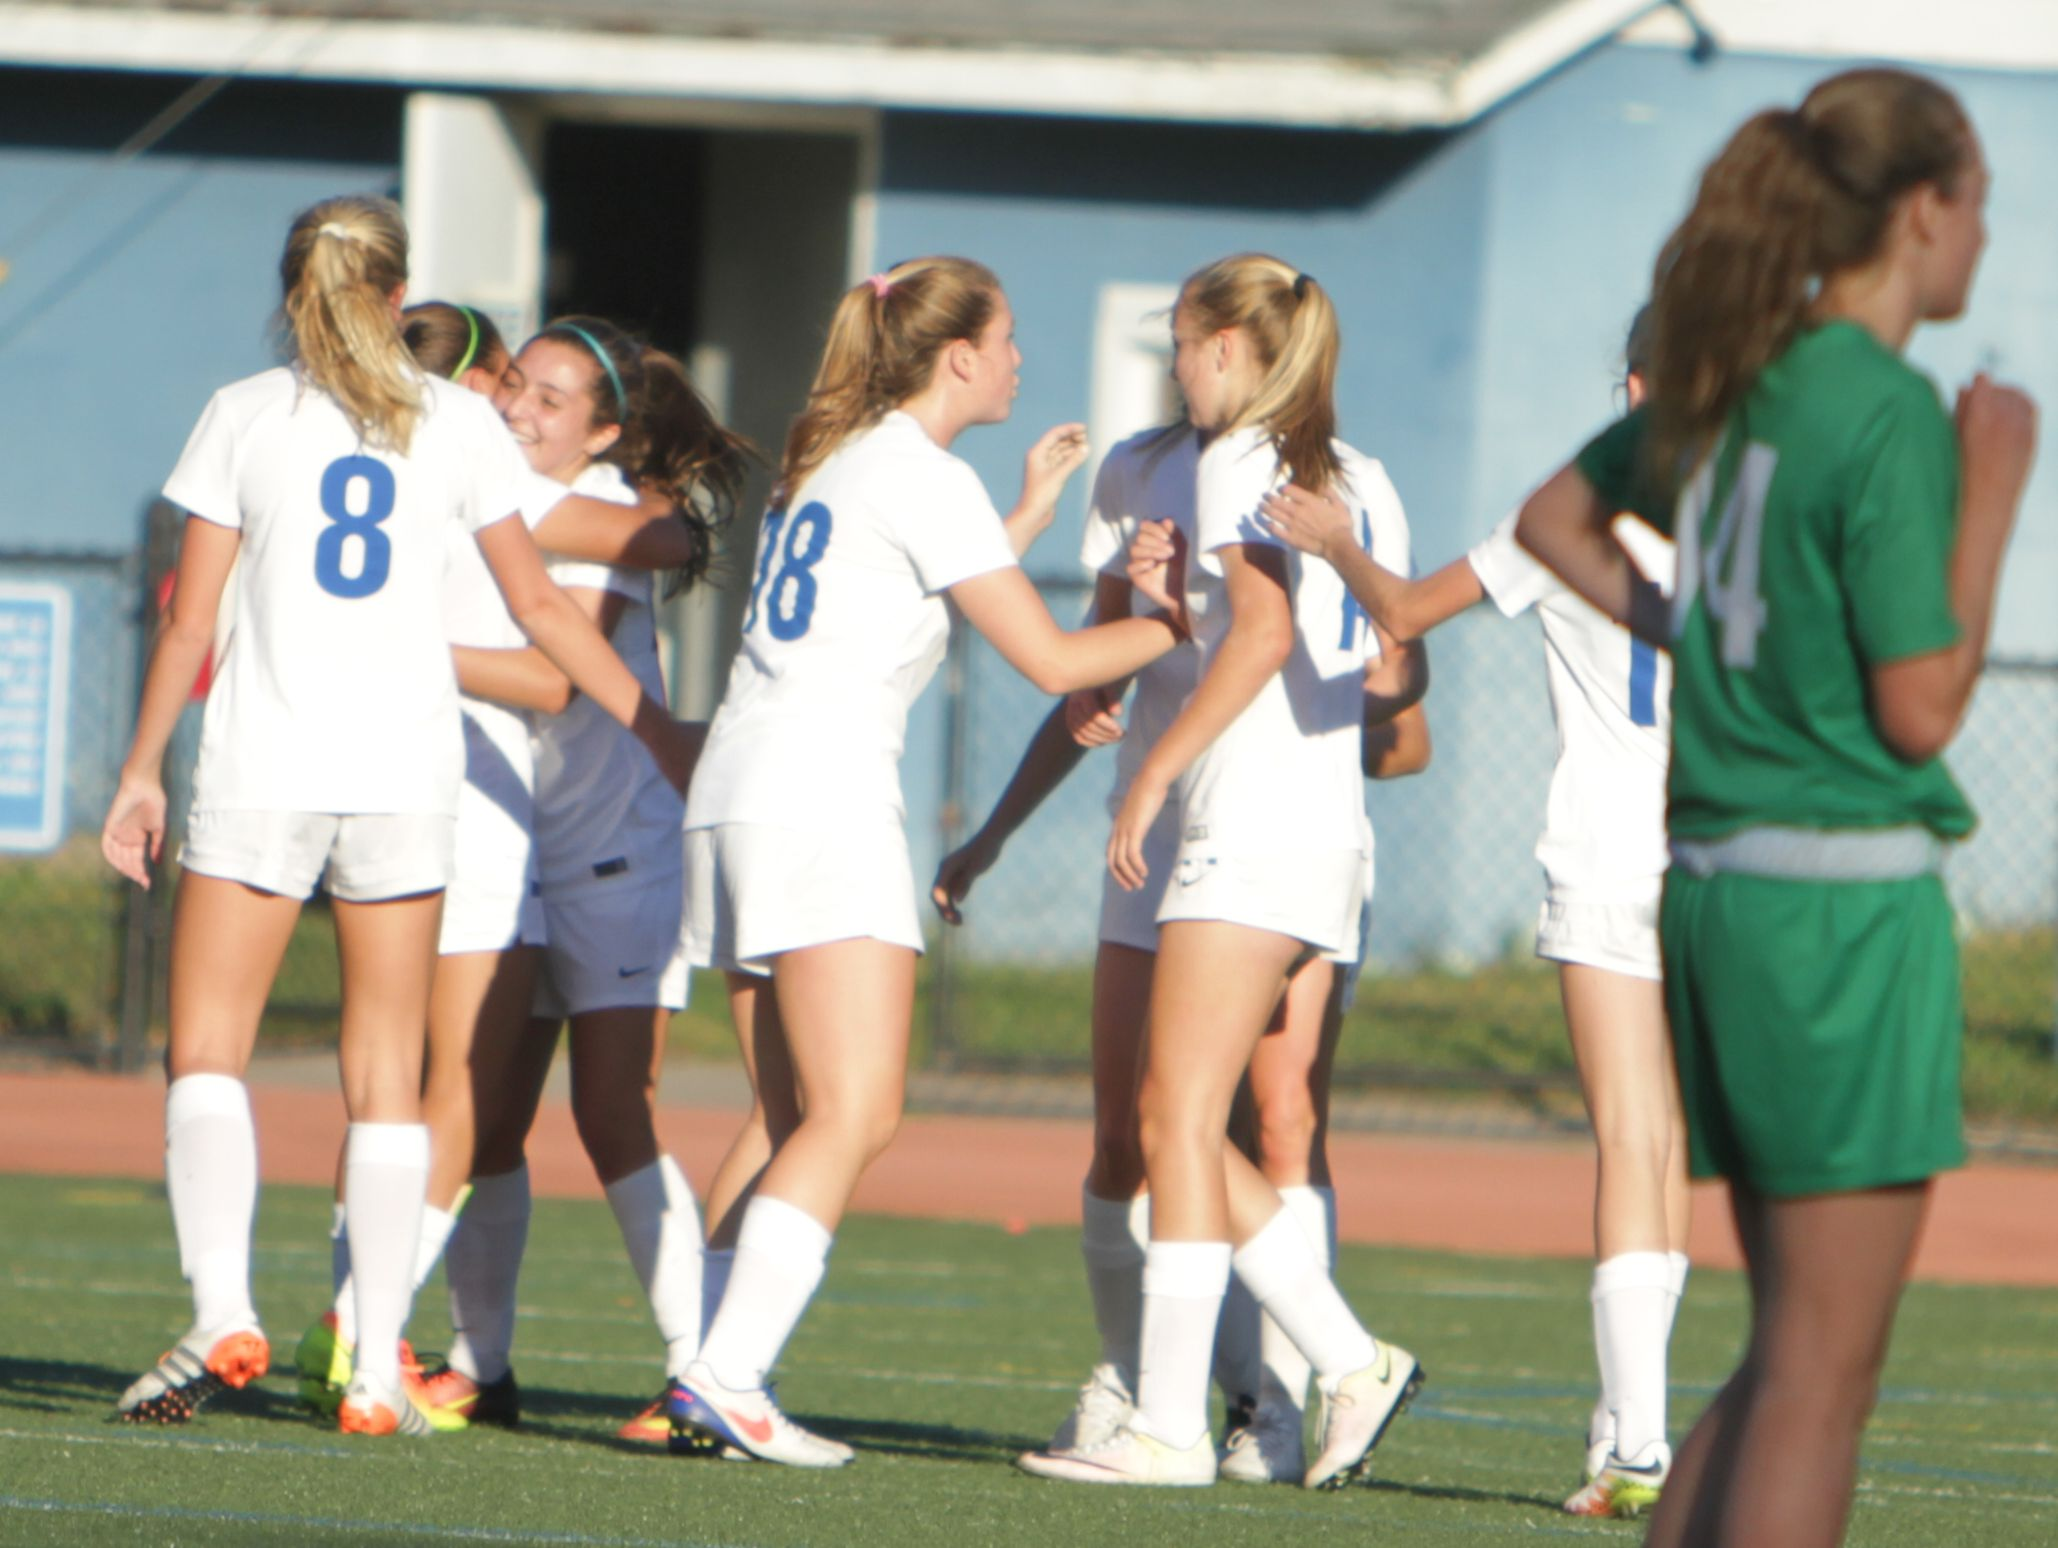 Bronxville celebrates after a first-half goal from Alex Doukas during a Section 1 girls soccer game between Bronxville and Irvington at Bronxville High School on Thursday, Oct. 6th, 2016. Bronxville won 4-3.